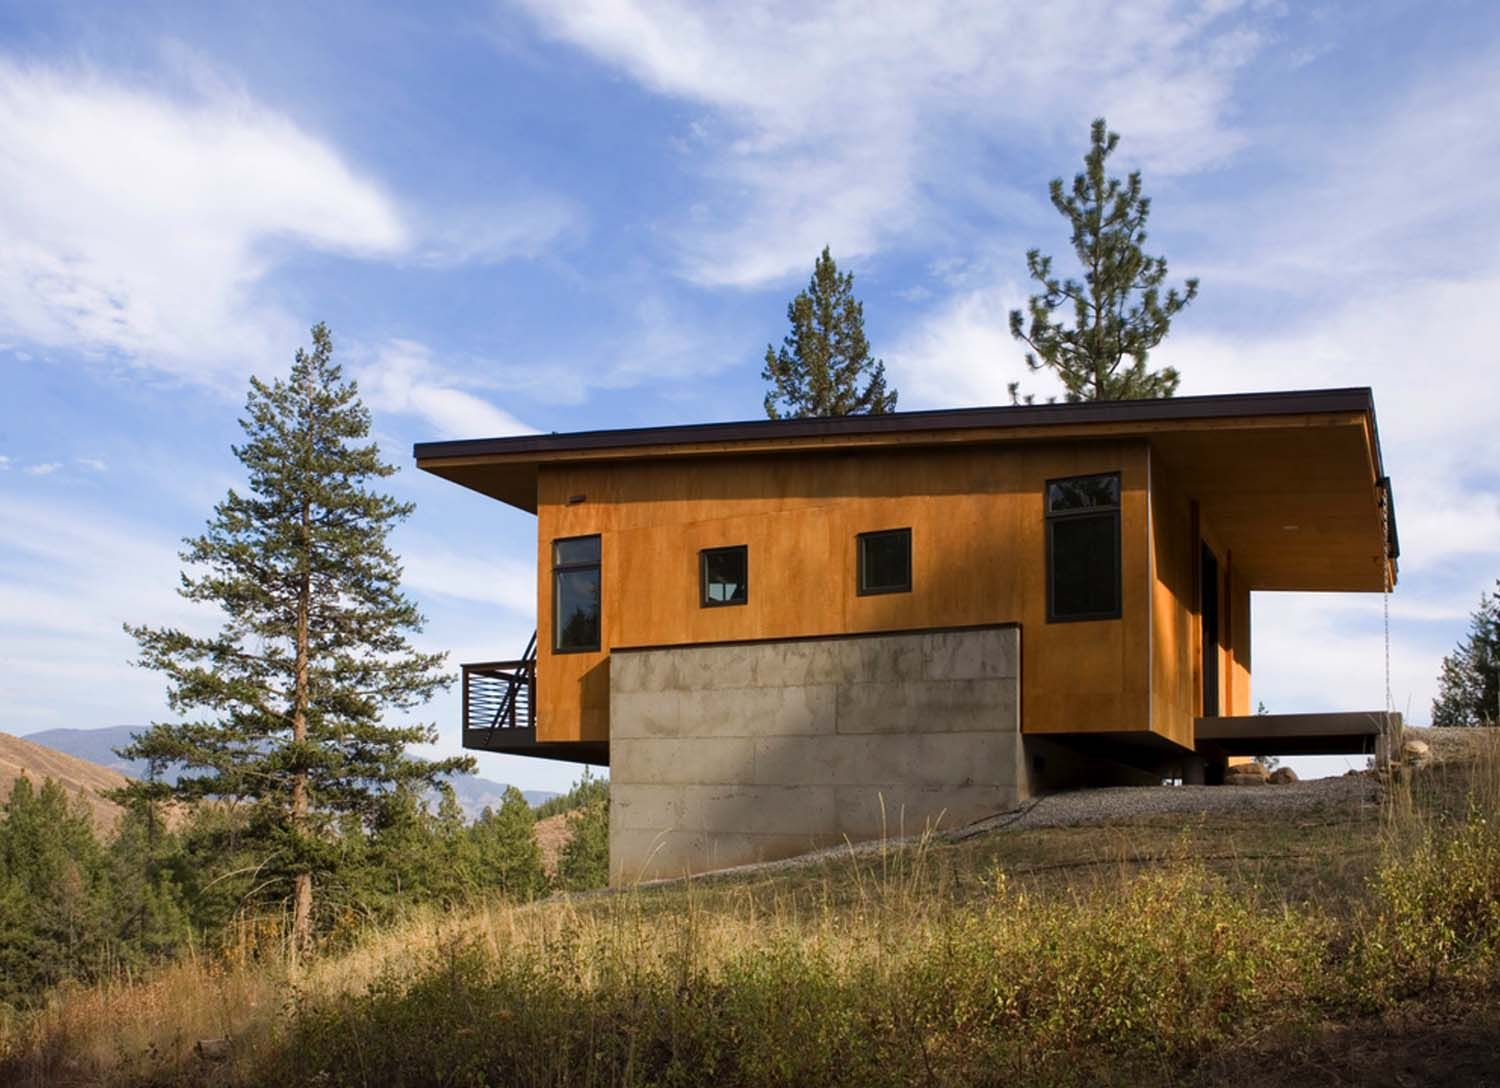 A budget-friendly cabin surrounded by forest in Methow Valley